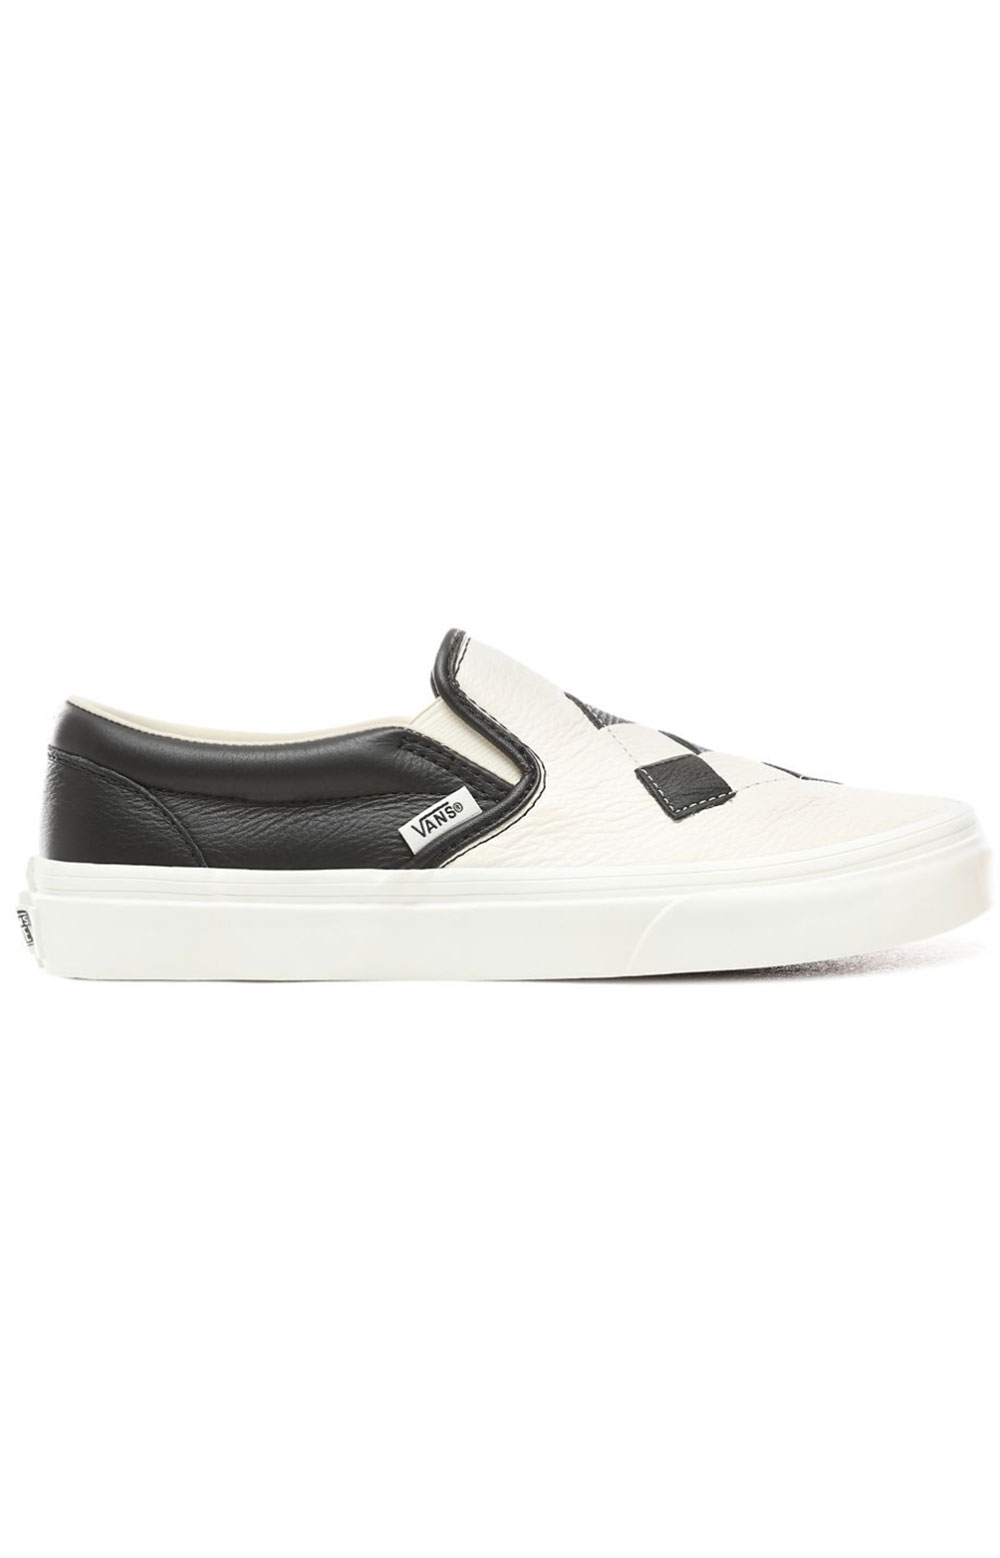 (8F7VMW) Woven Leather Classic Slip-On Shoe - Checkerboard